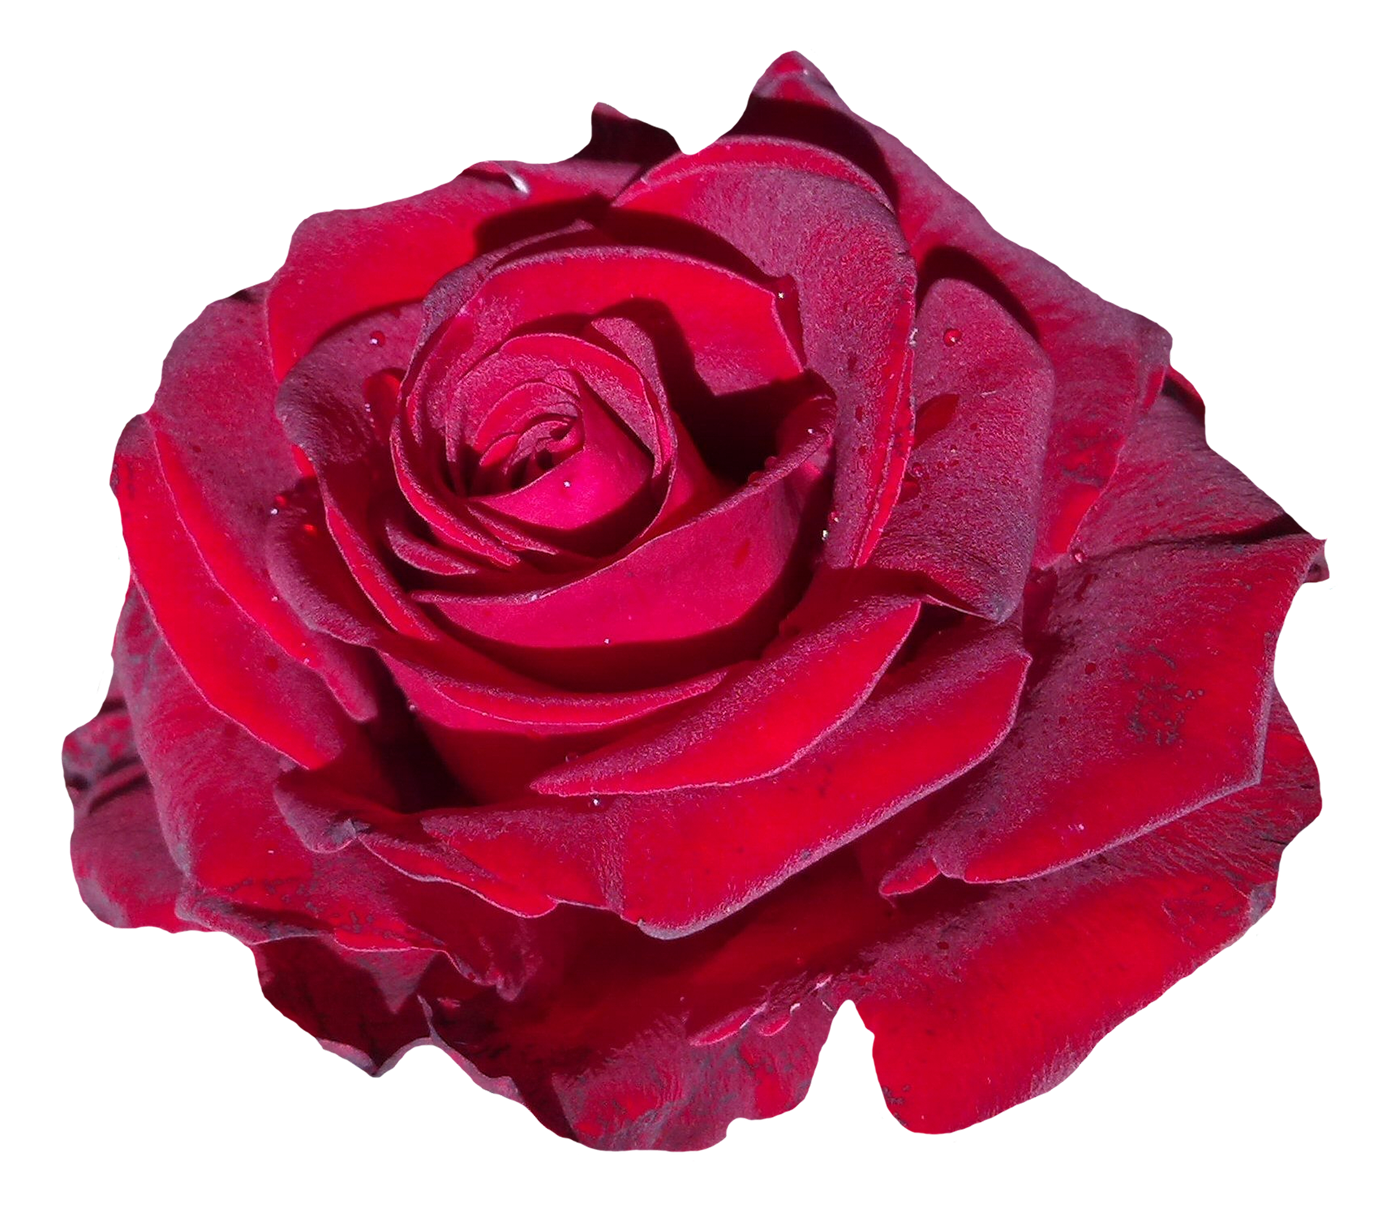 Red Rose Flower PNG Image.